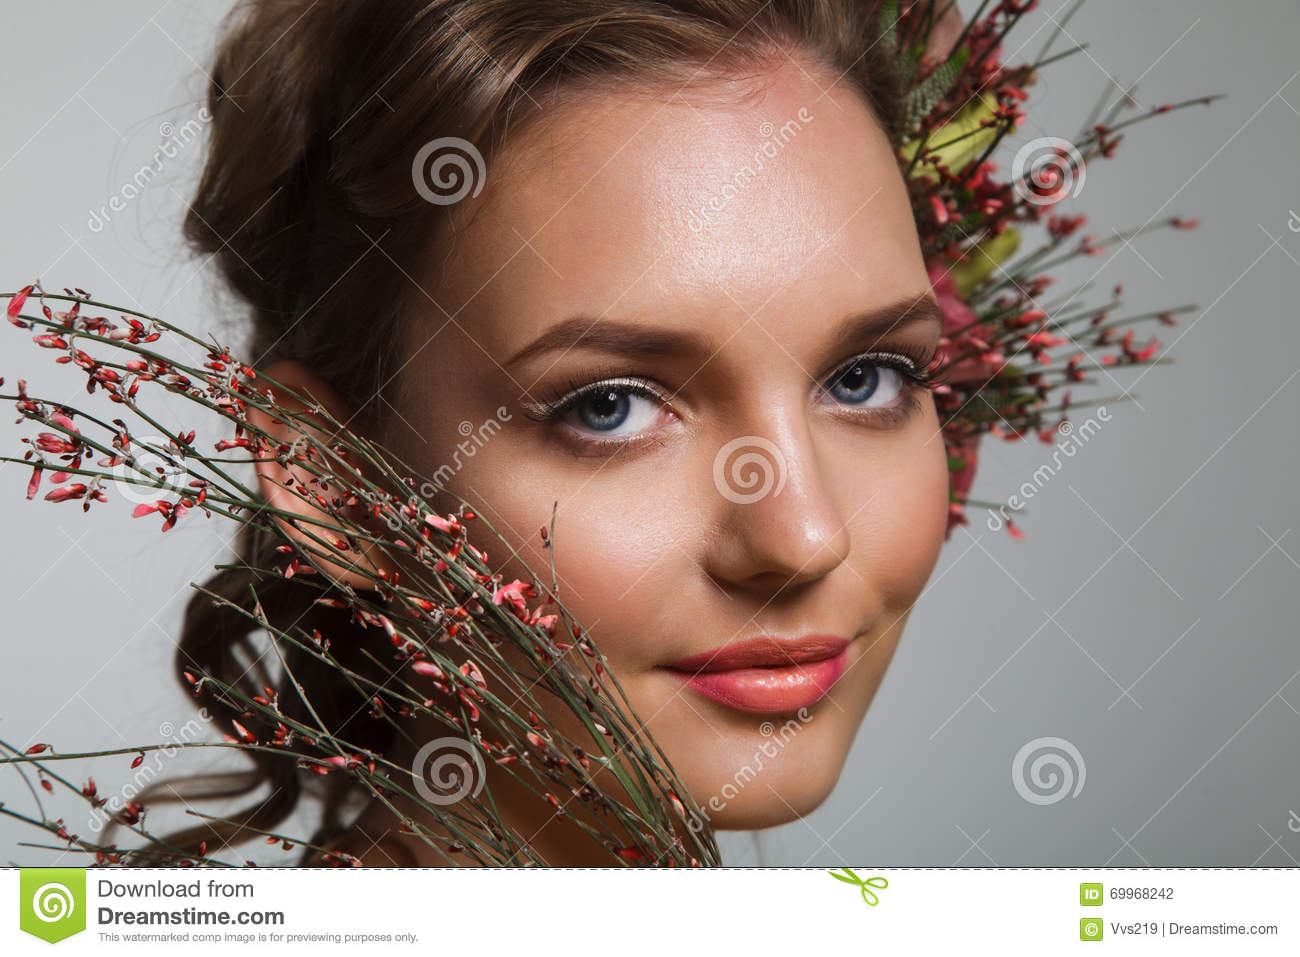 Tender beauty stock photo. Image of complexion, clean